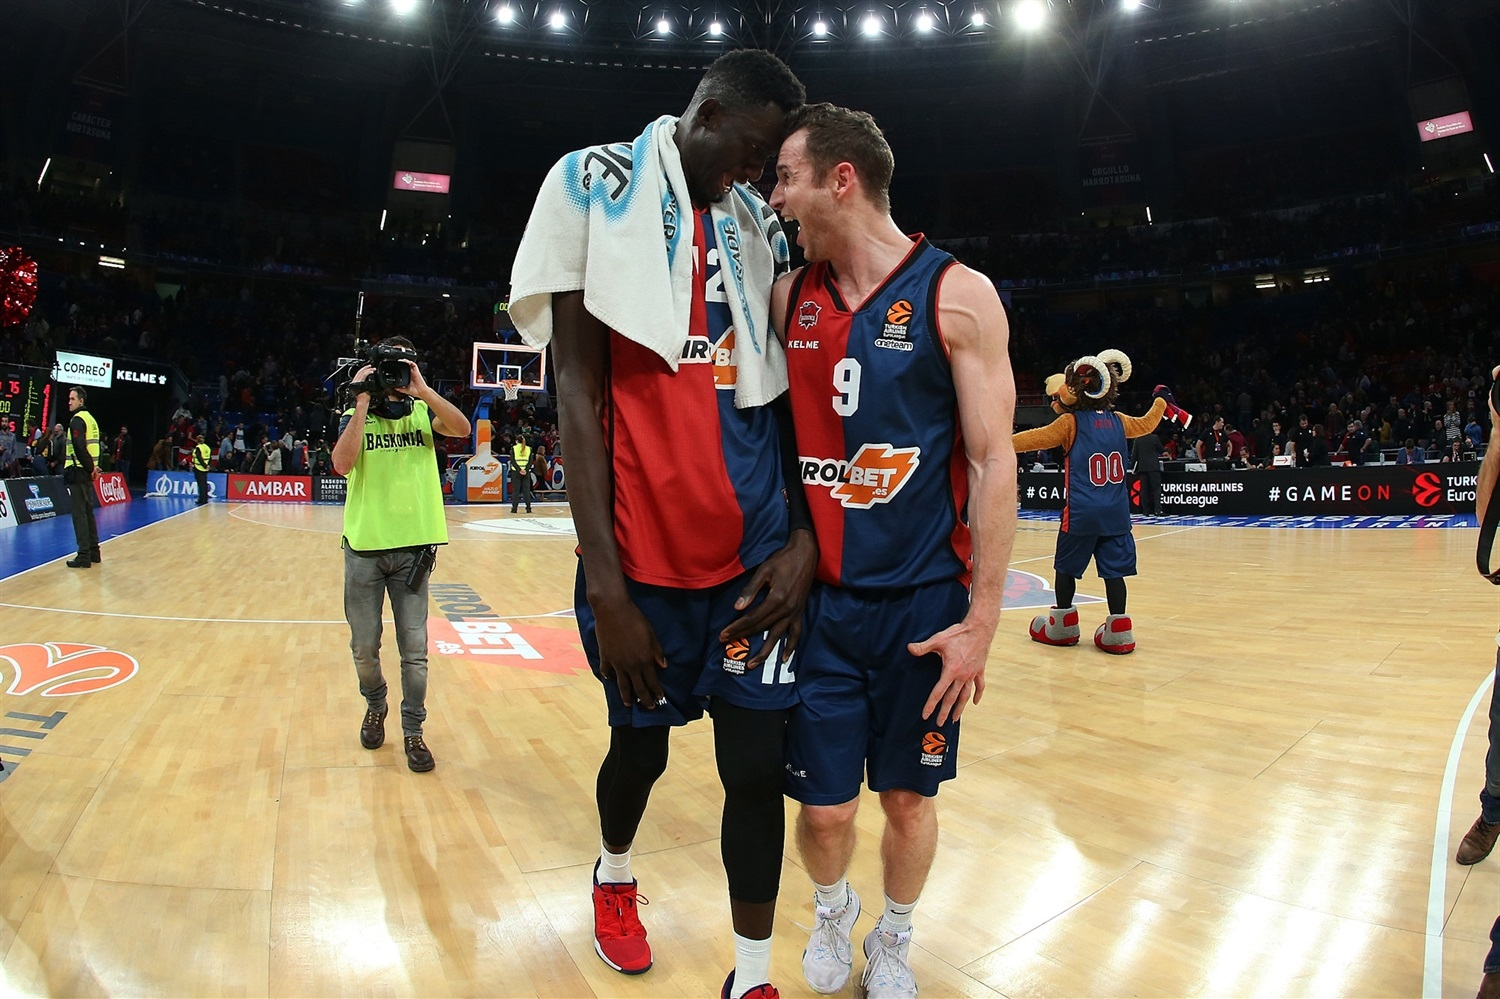 Diop and Huertas celebrates - KIROLBET Baskonia Vitoria-Gasteiz - EB18